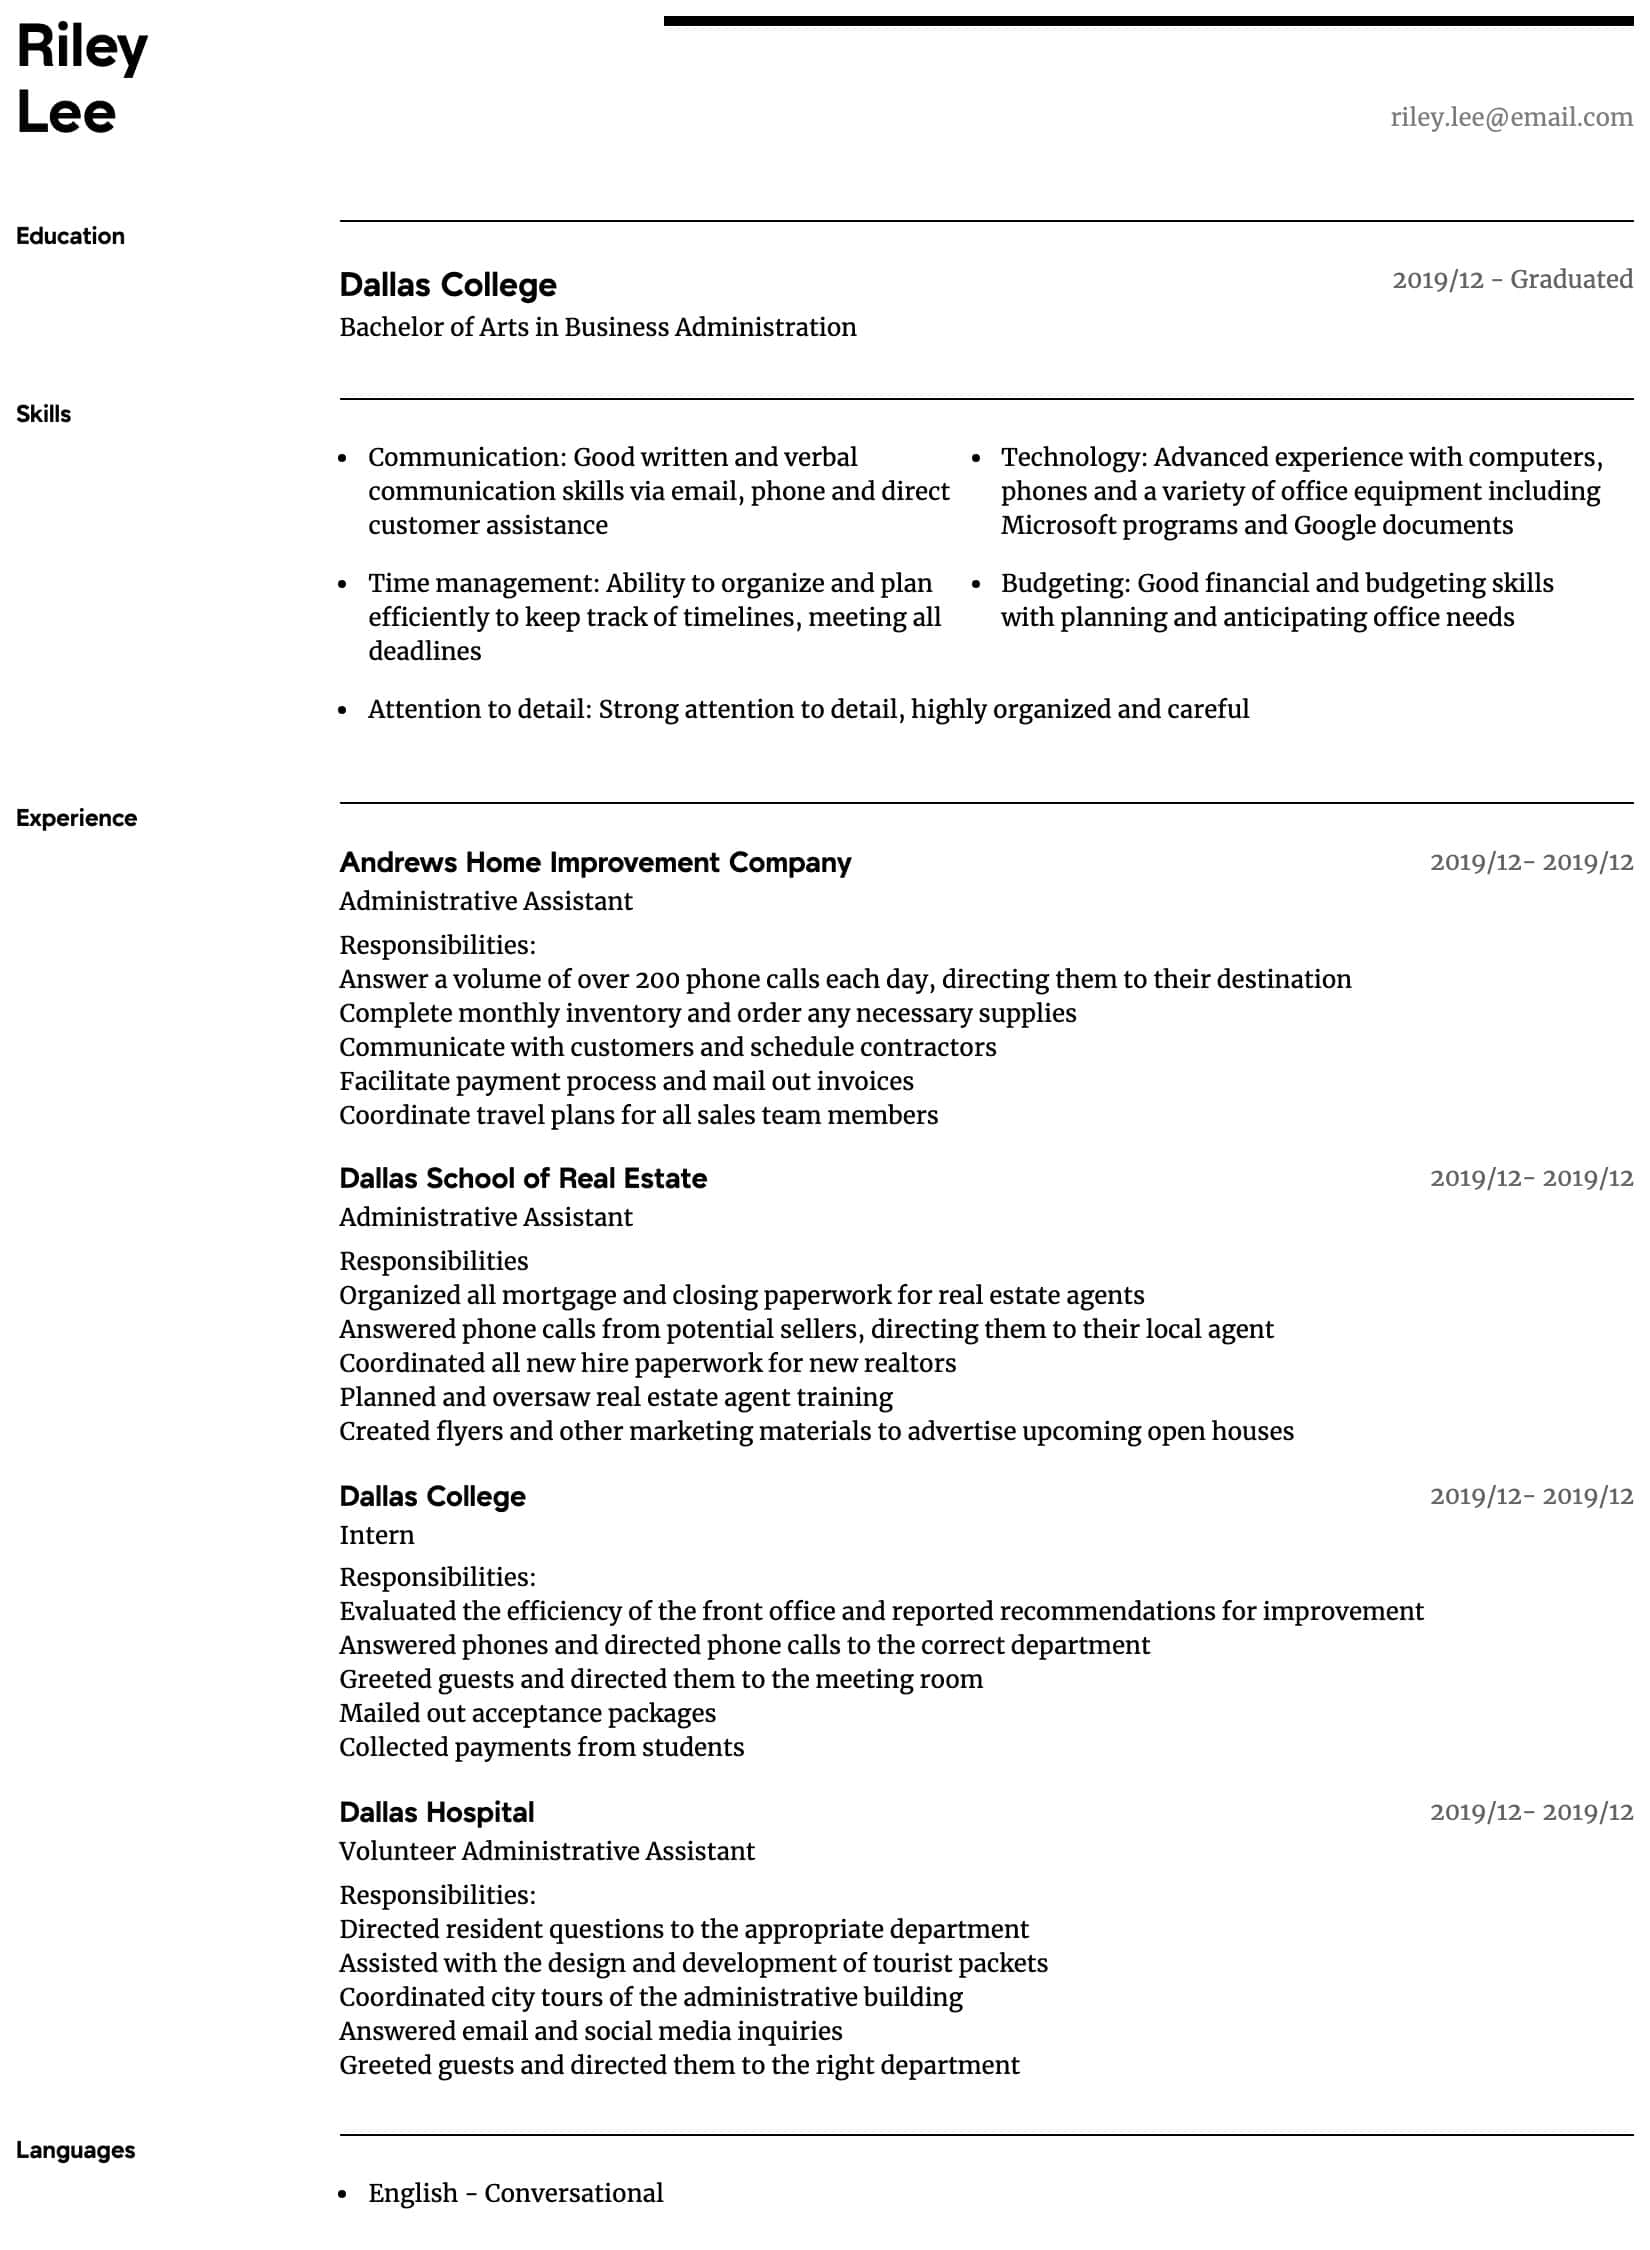 administrative assistant resume samples all experience levels intermediate current styles Resume Administrative Assistant Resume